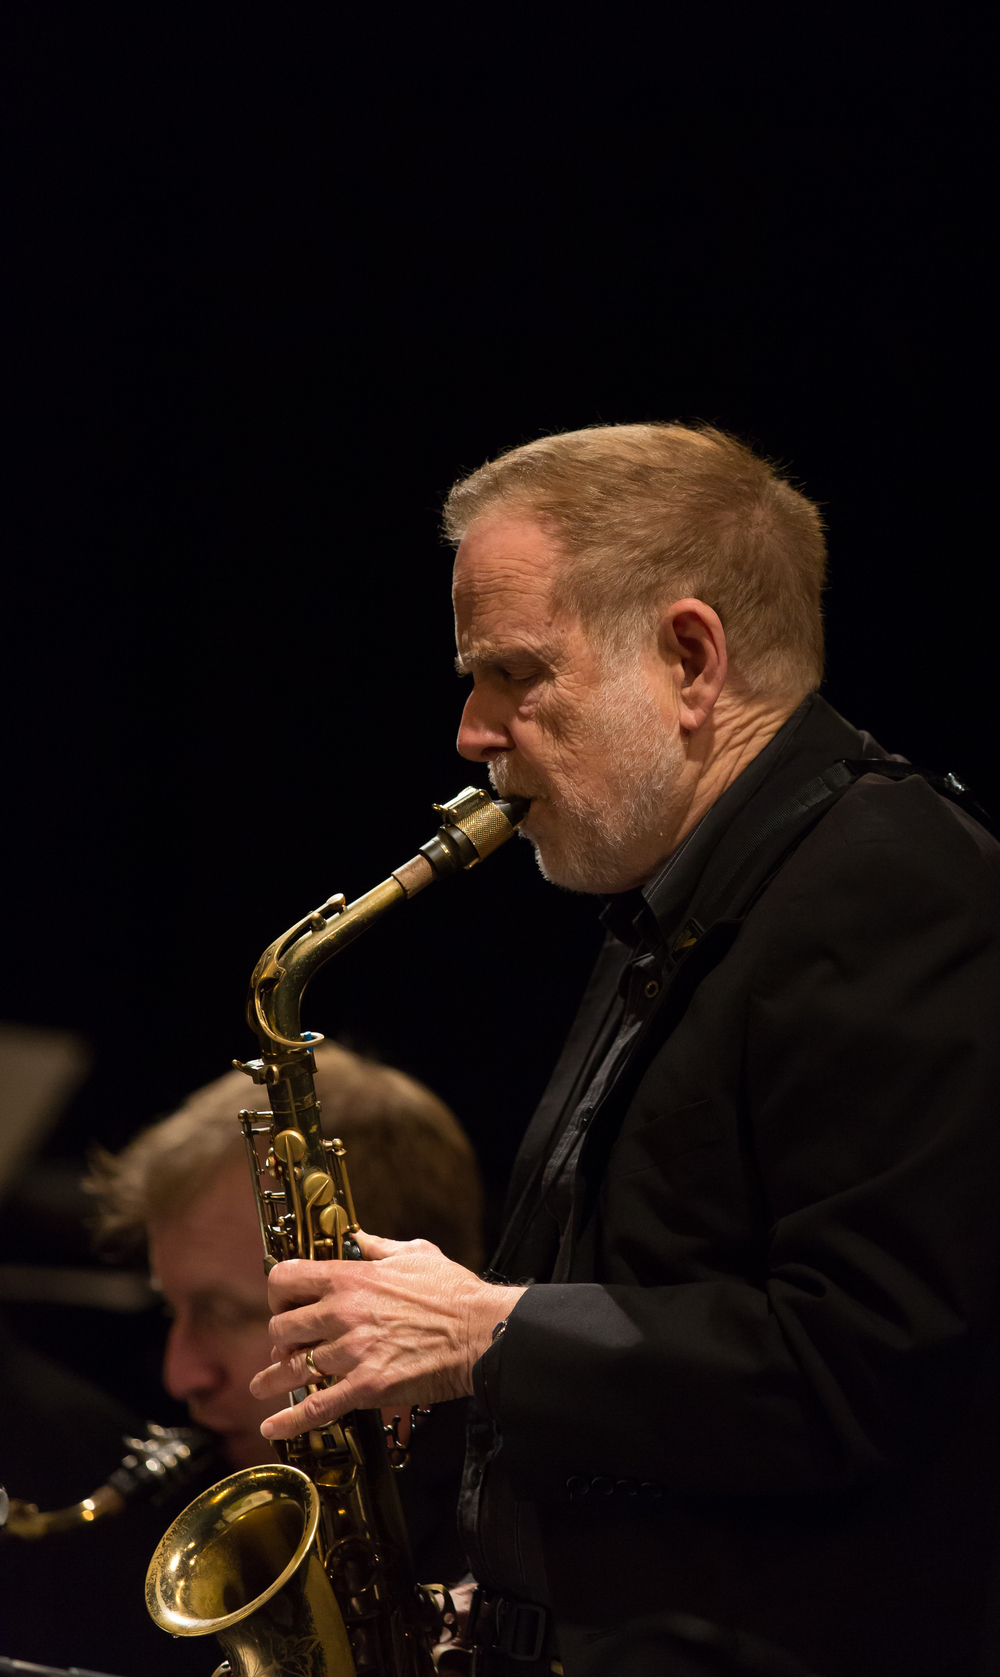 Kim RIchmond, alto sax